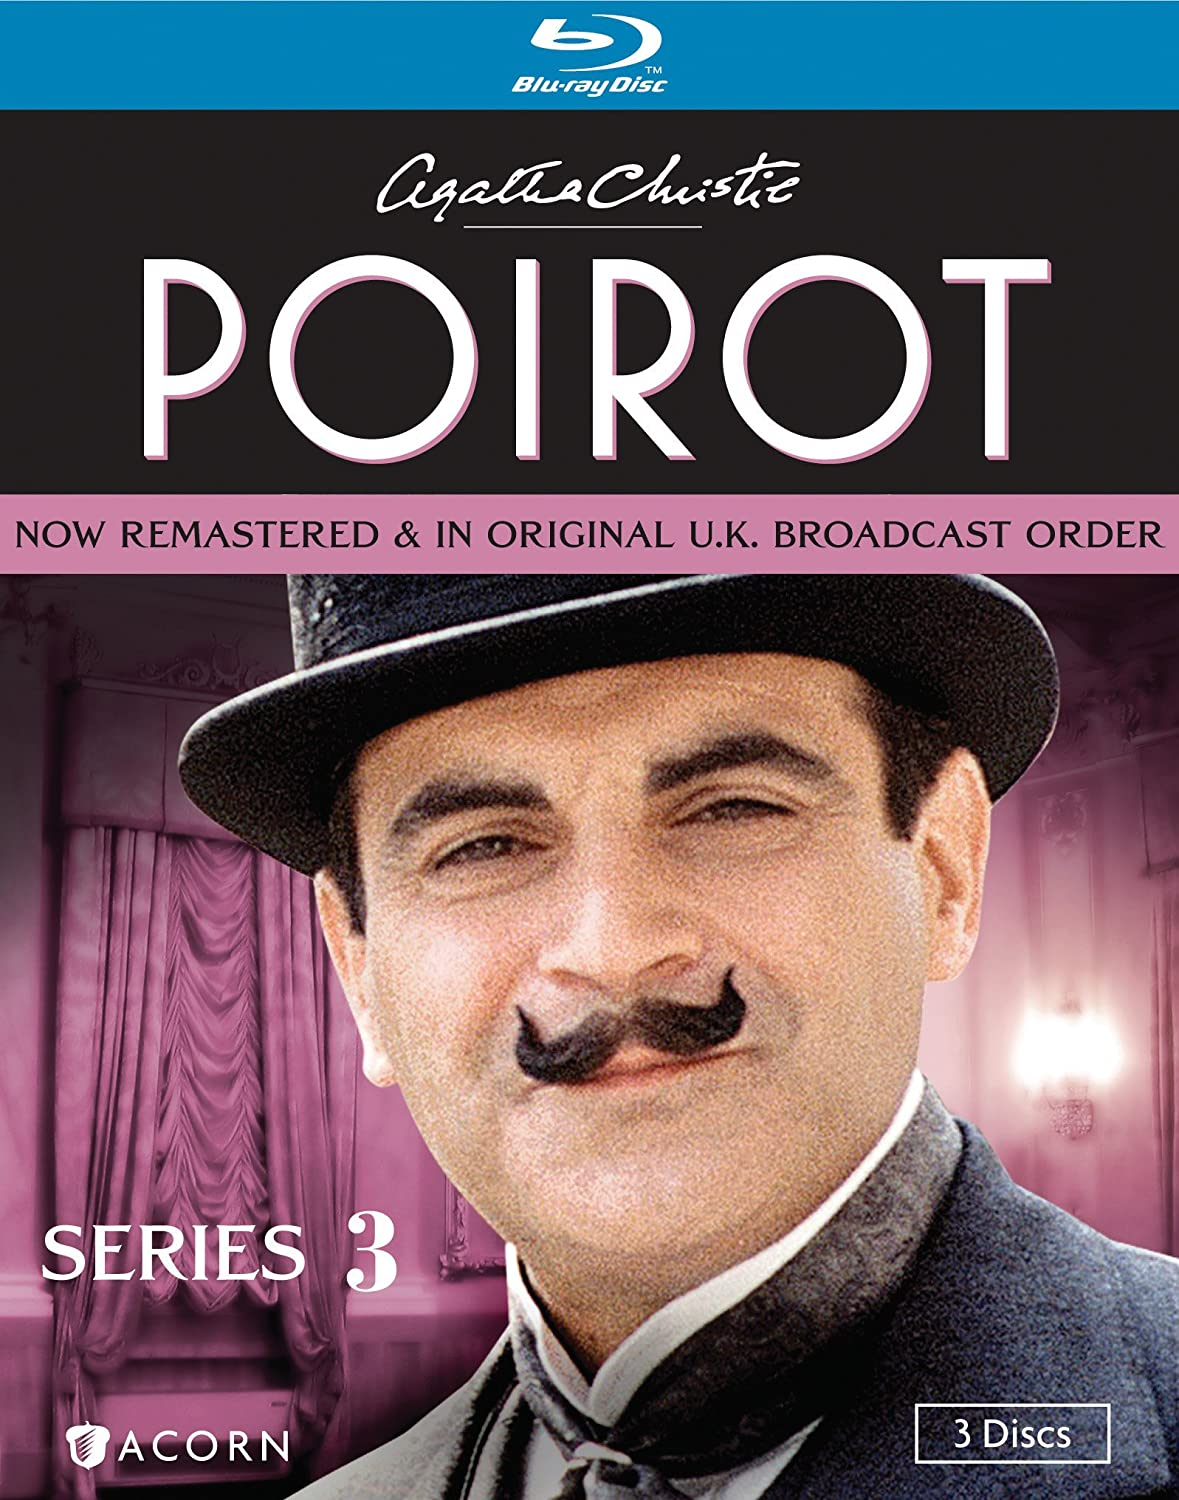 Agatha Christie S Poirot Series 3 Blu Ray David Suchet Hugh Fraser Philip Jackson Pauline Moran Movies Tv